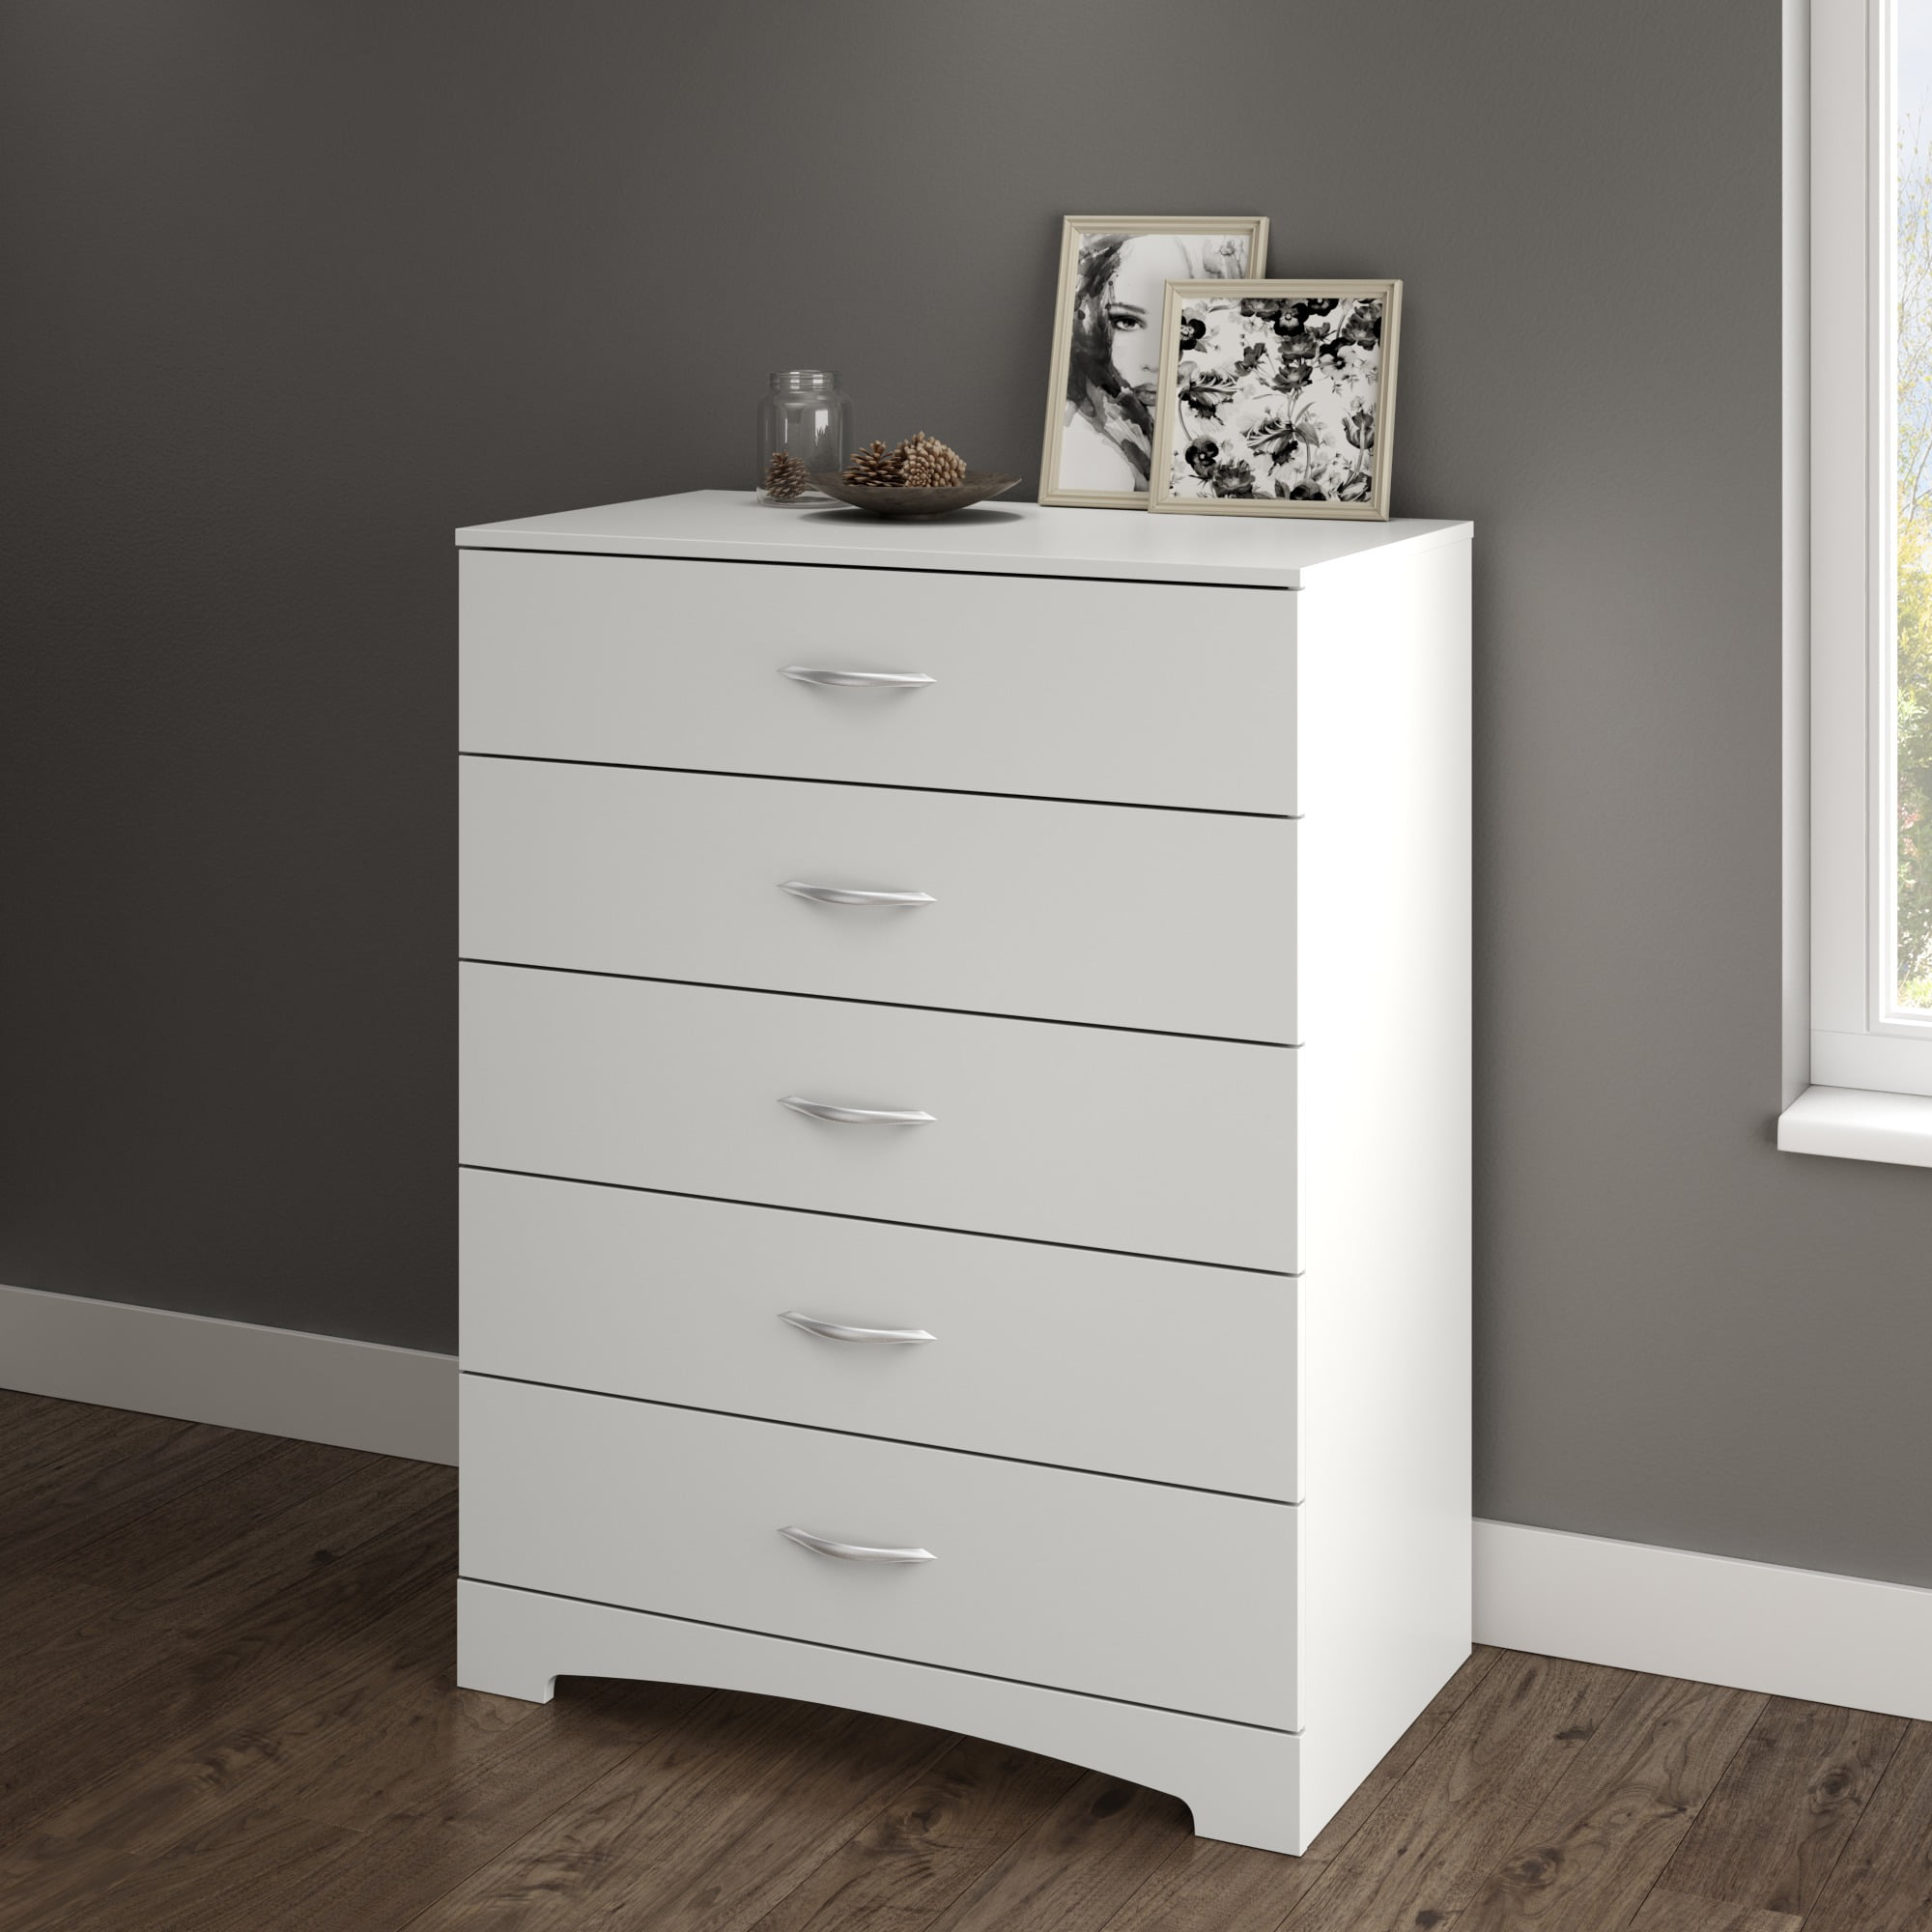 br drawers four with mirror dresser limited modern industries chest product drawer of